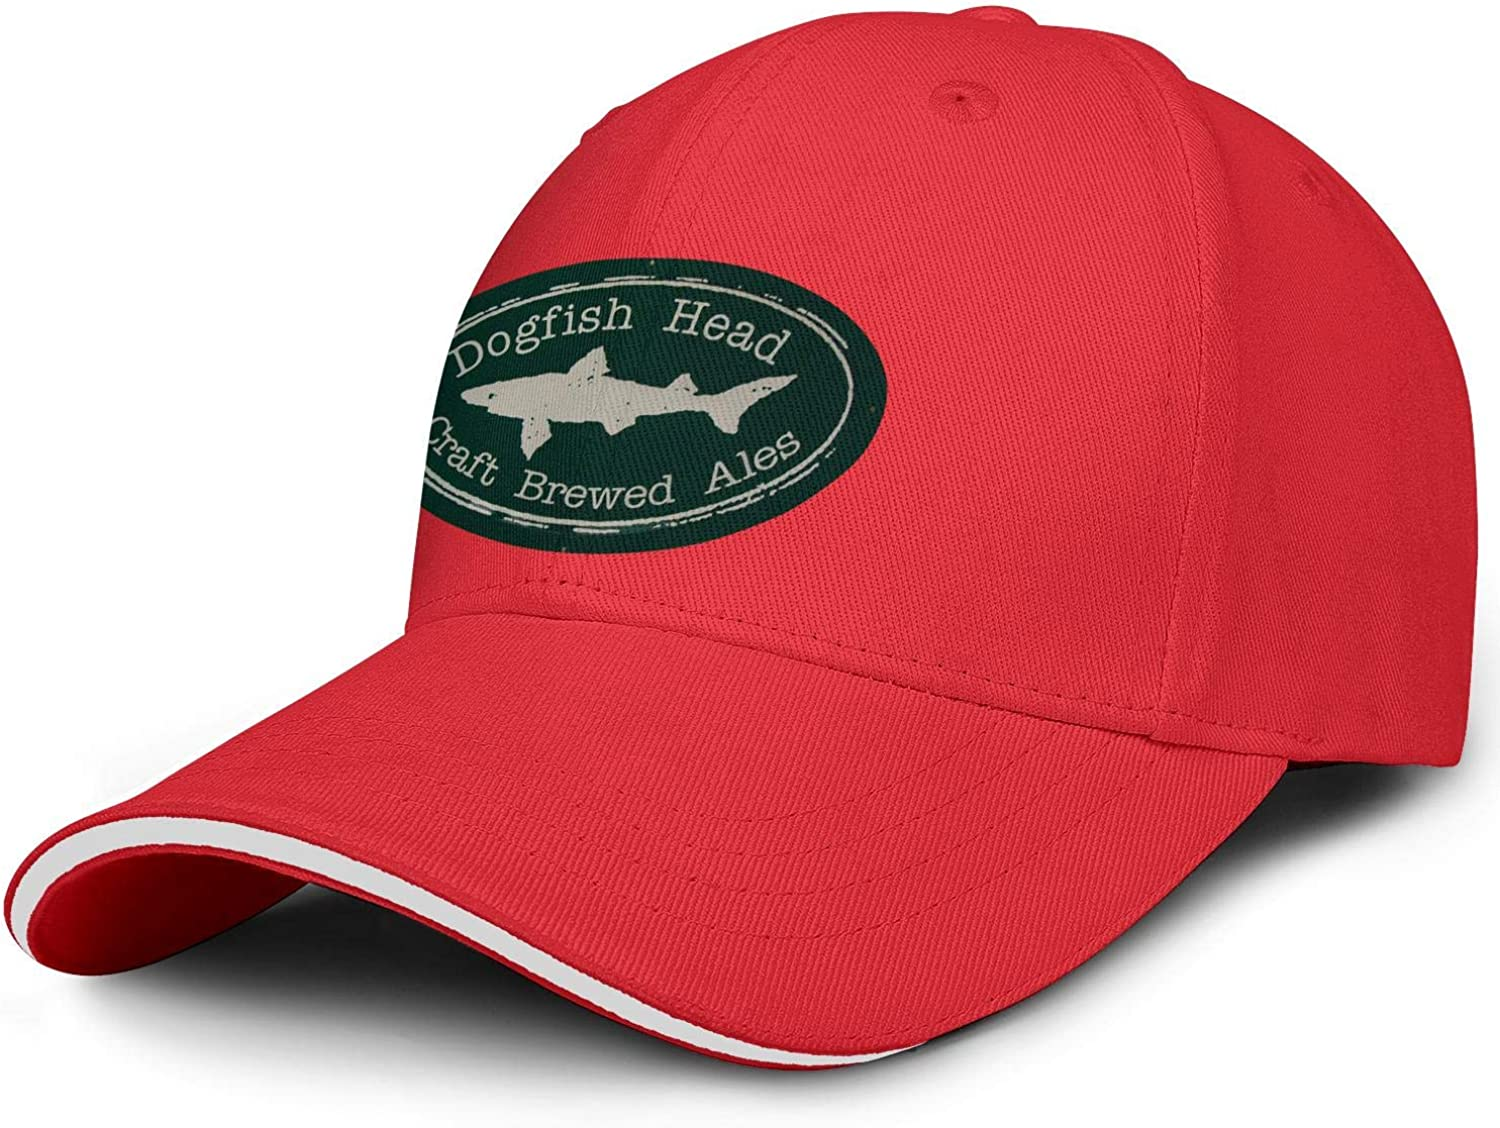 Dogfish-Head-Brewery-Beer-L...